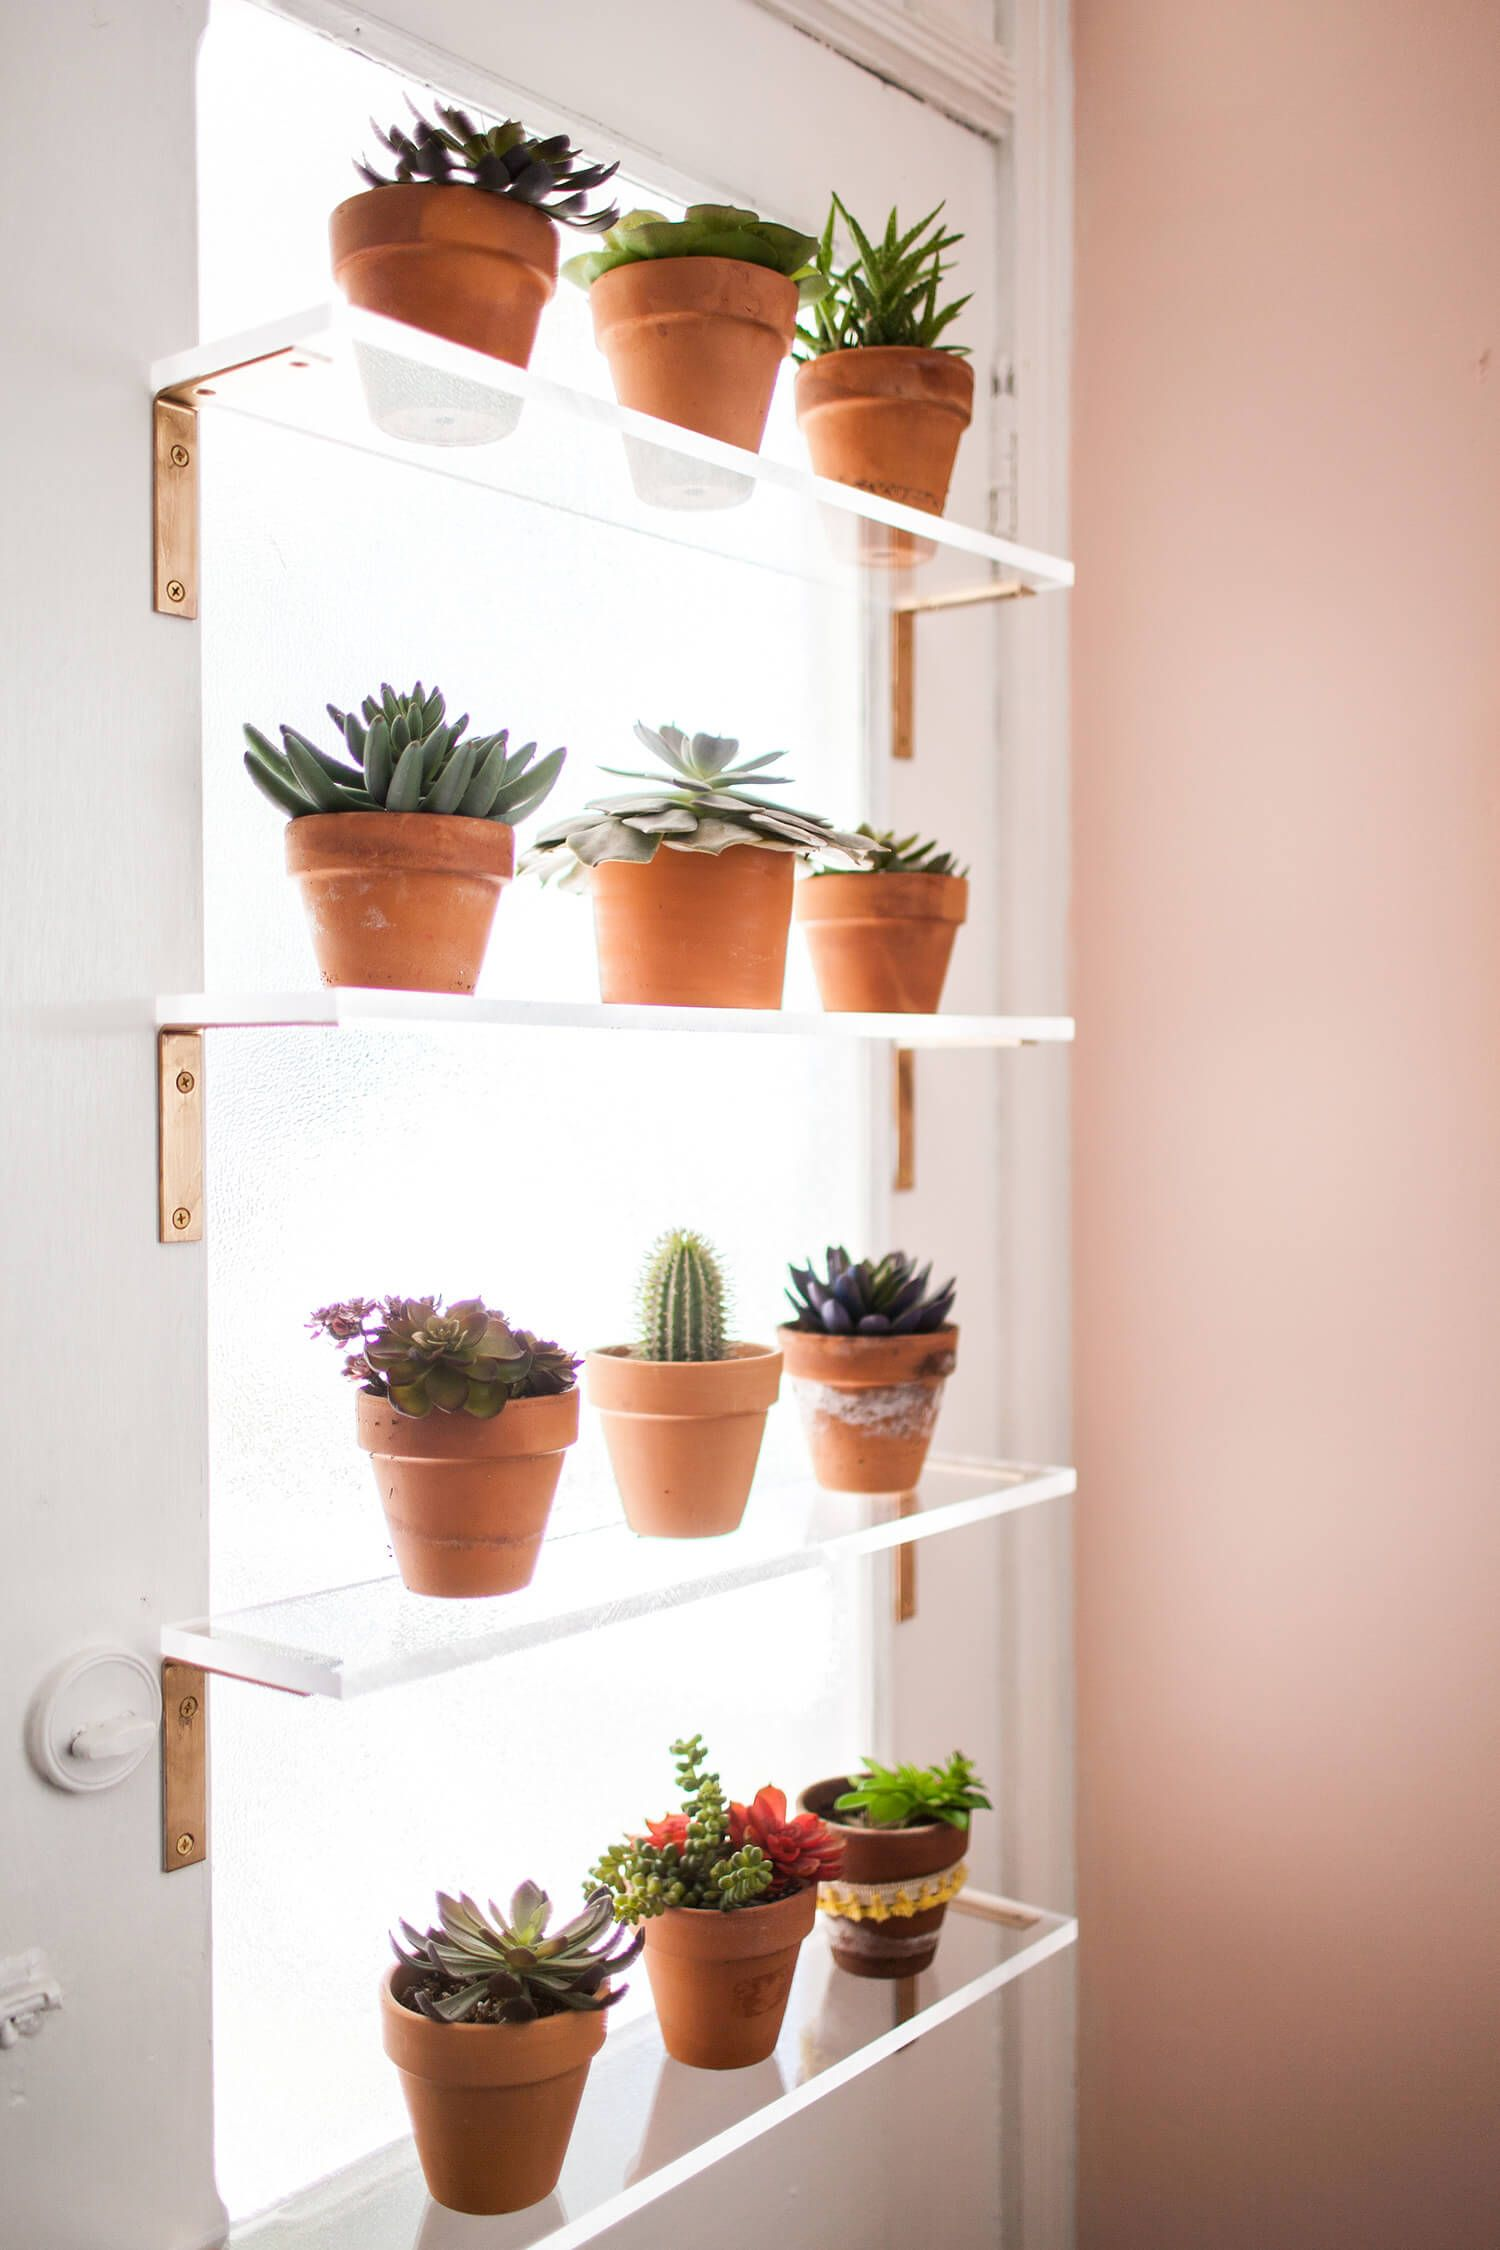 plant shelving acrylic shelves and cheap hardware store. Black Bedroom Furniture Sets. Home Design Ideas